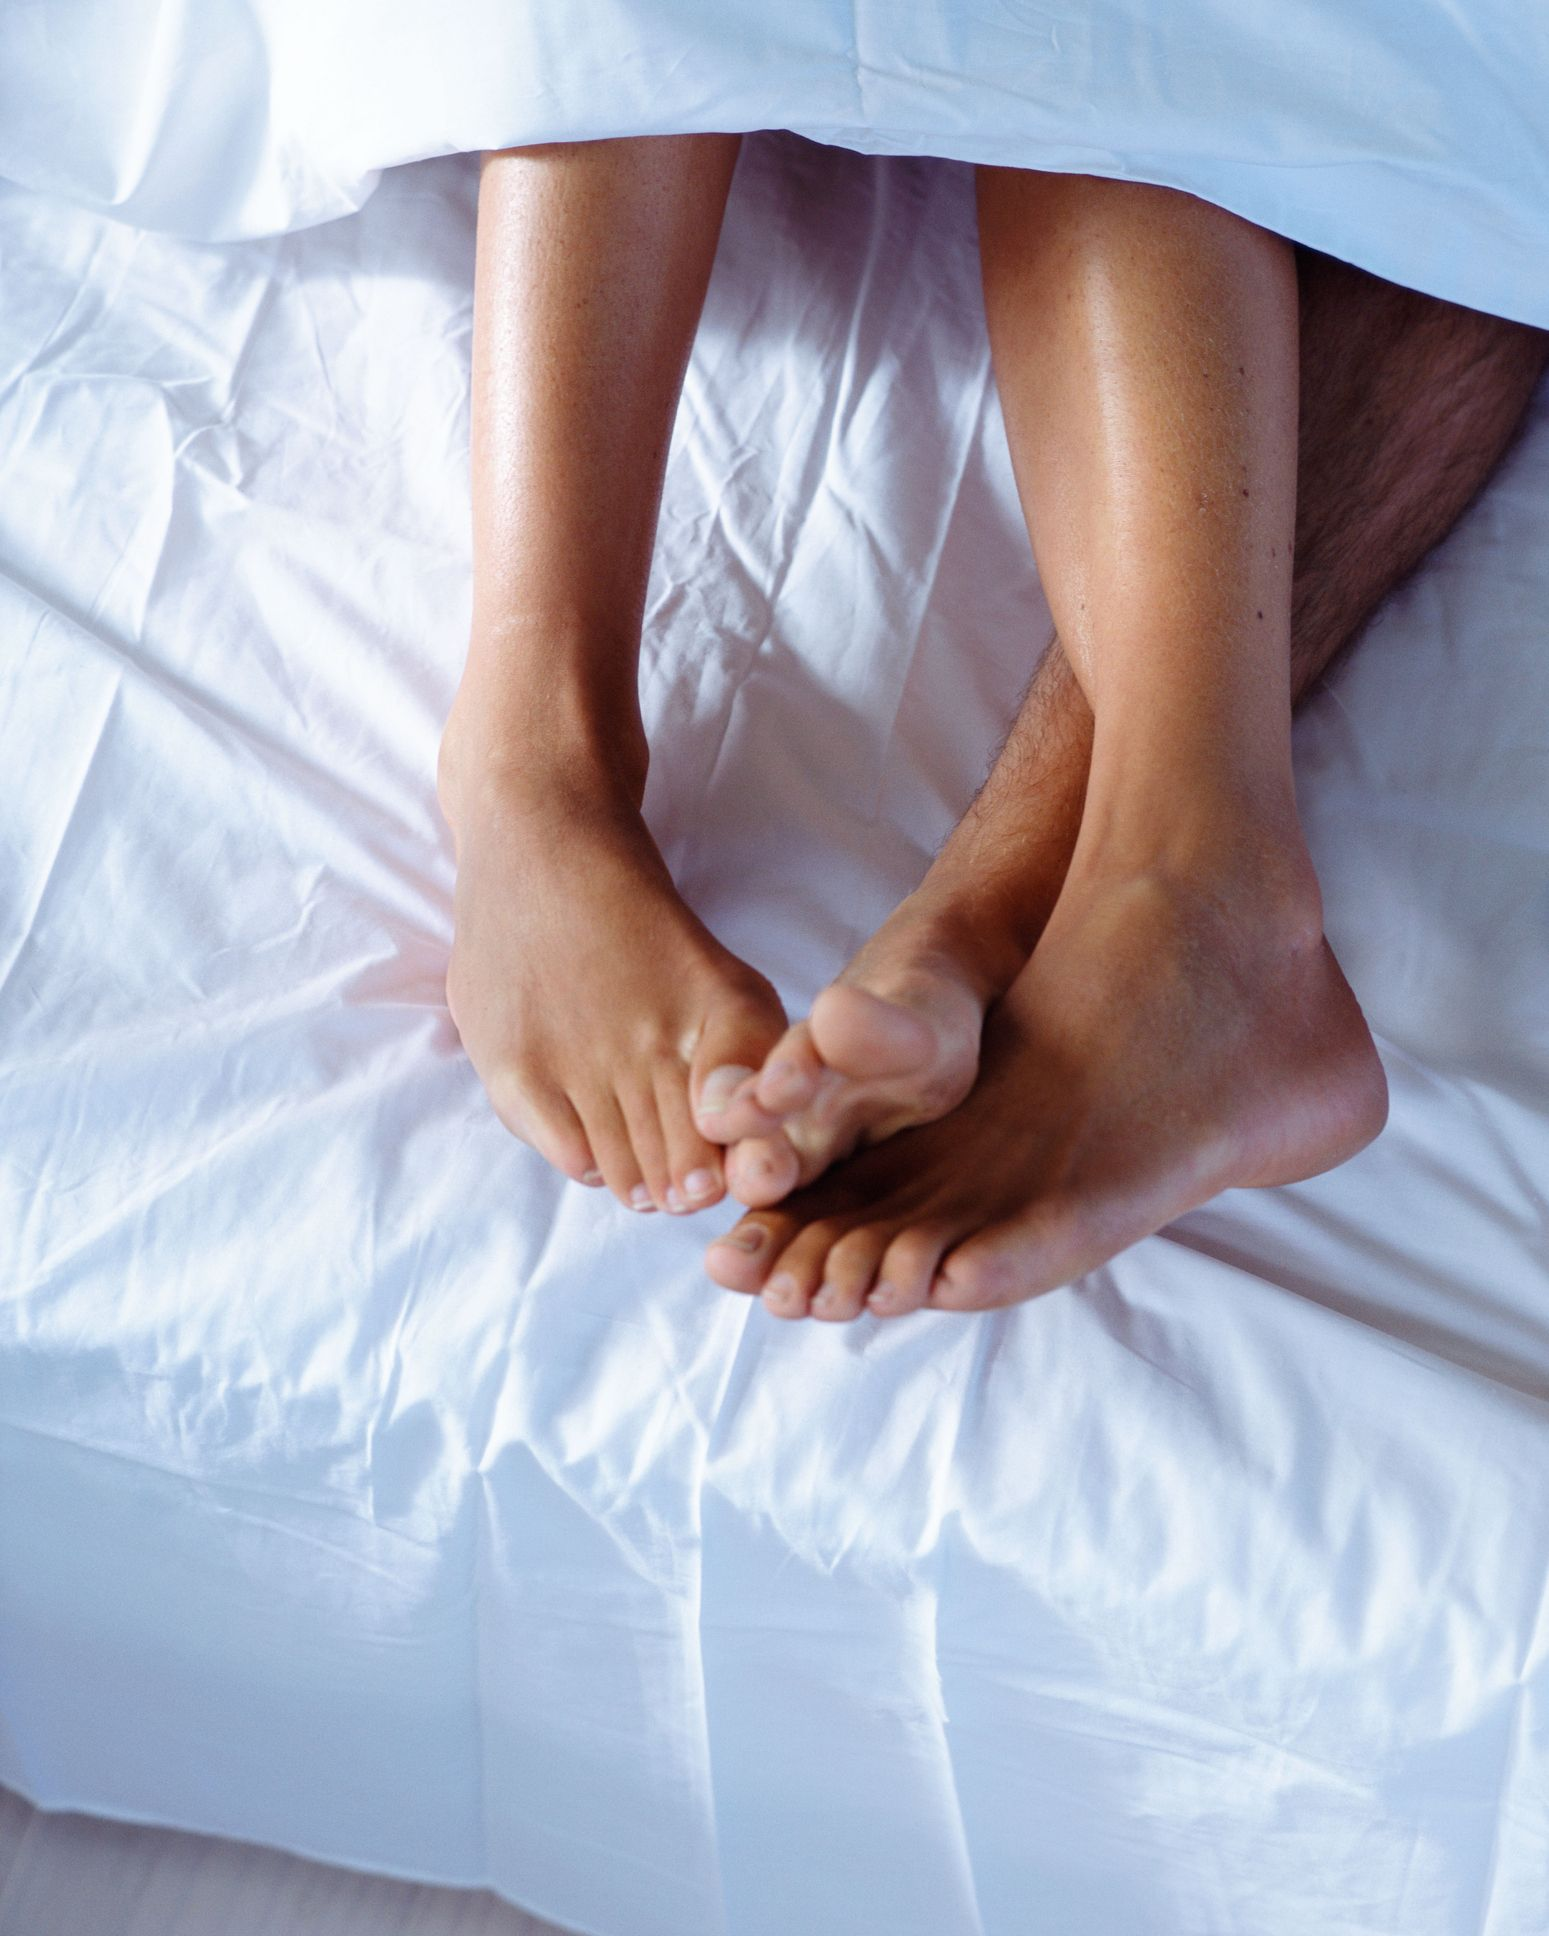 Keep getting cystitis after having sex? Here's what to do